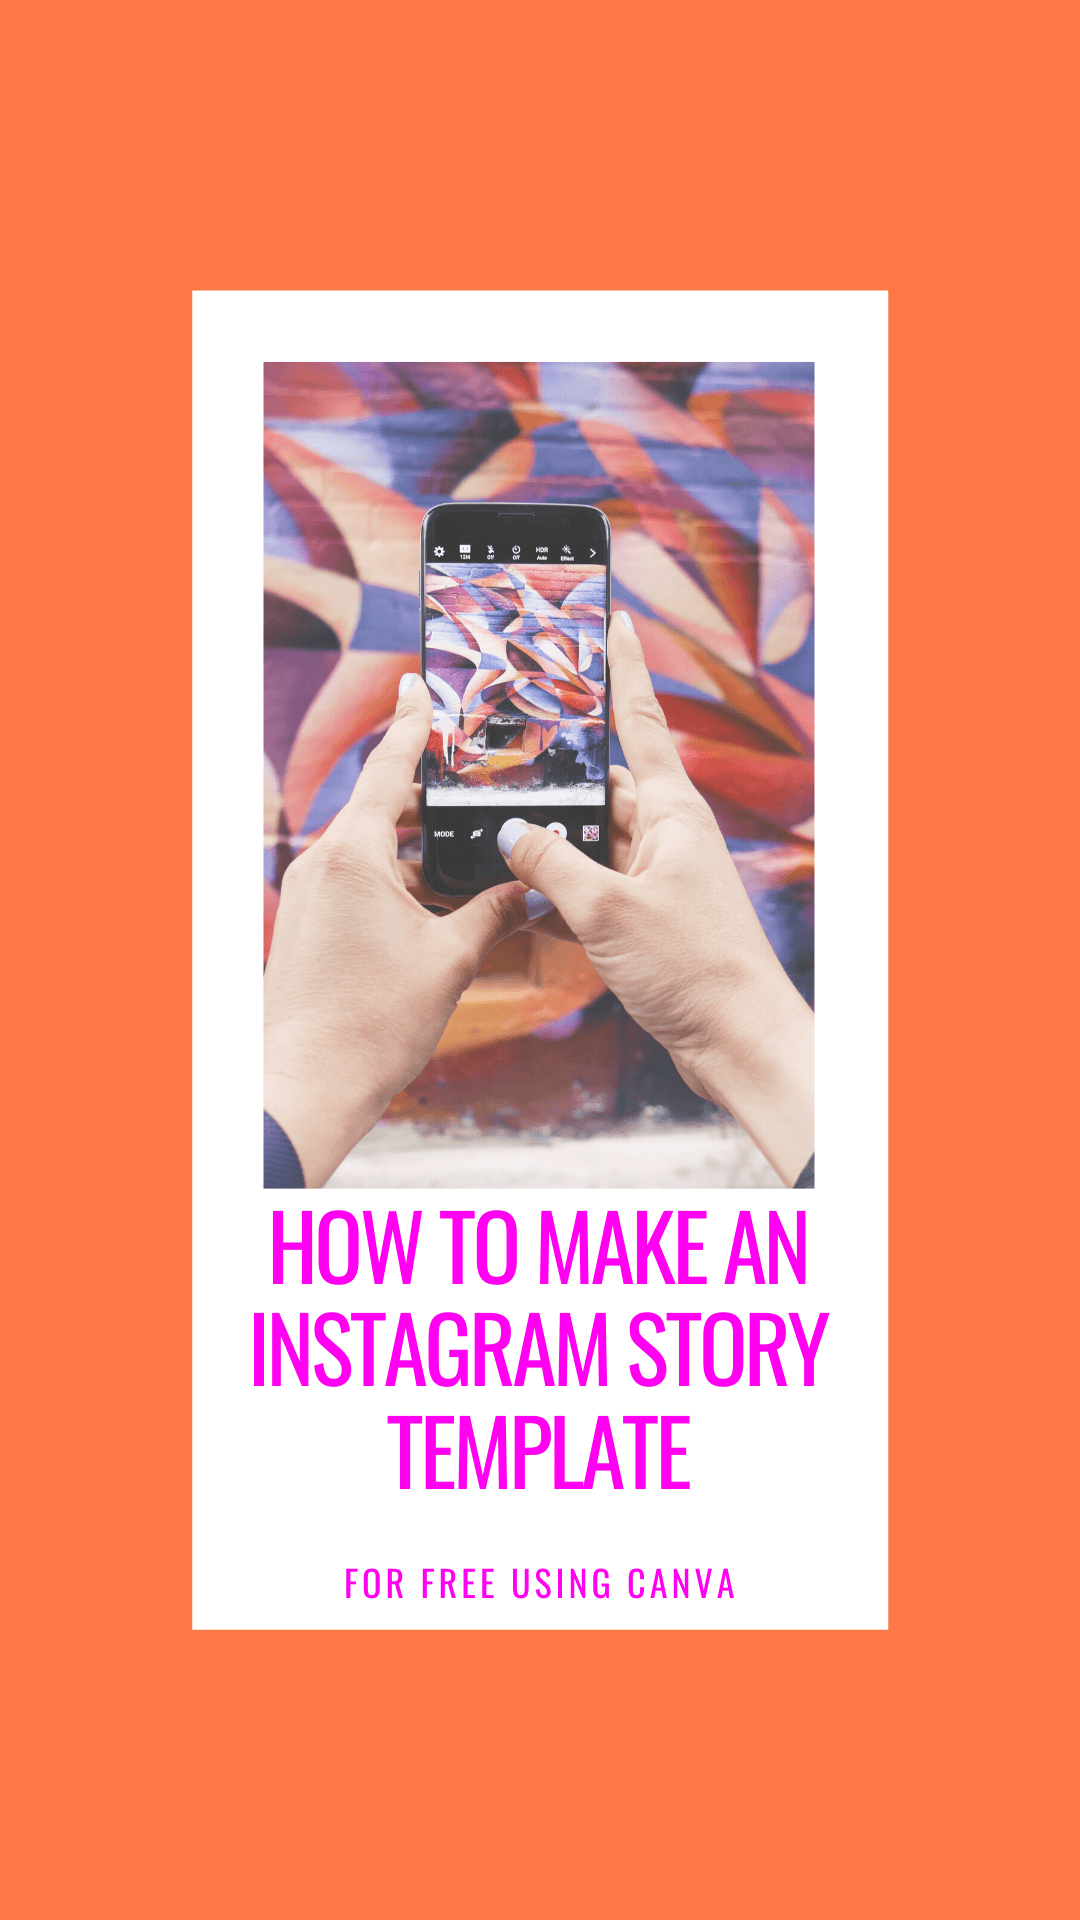 How To Make An Instagram Story Template - Curious how to make a template like the ones you see on Instagram? Here's how to make one for free using Canva! | Instagram Story Template - Canva Instagram Story - How To Make An Instagram Story